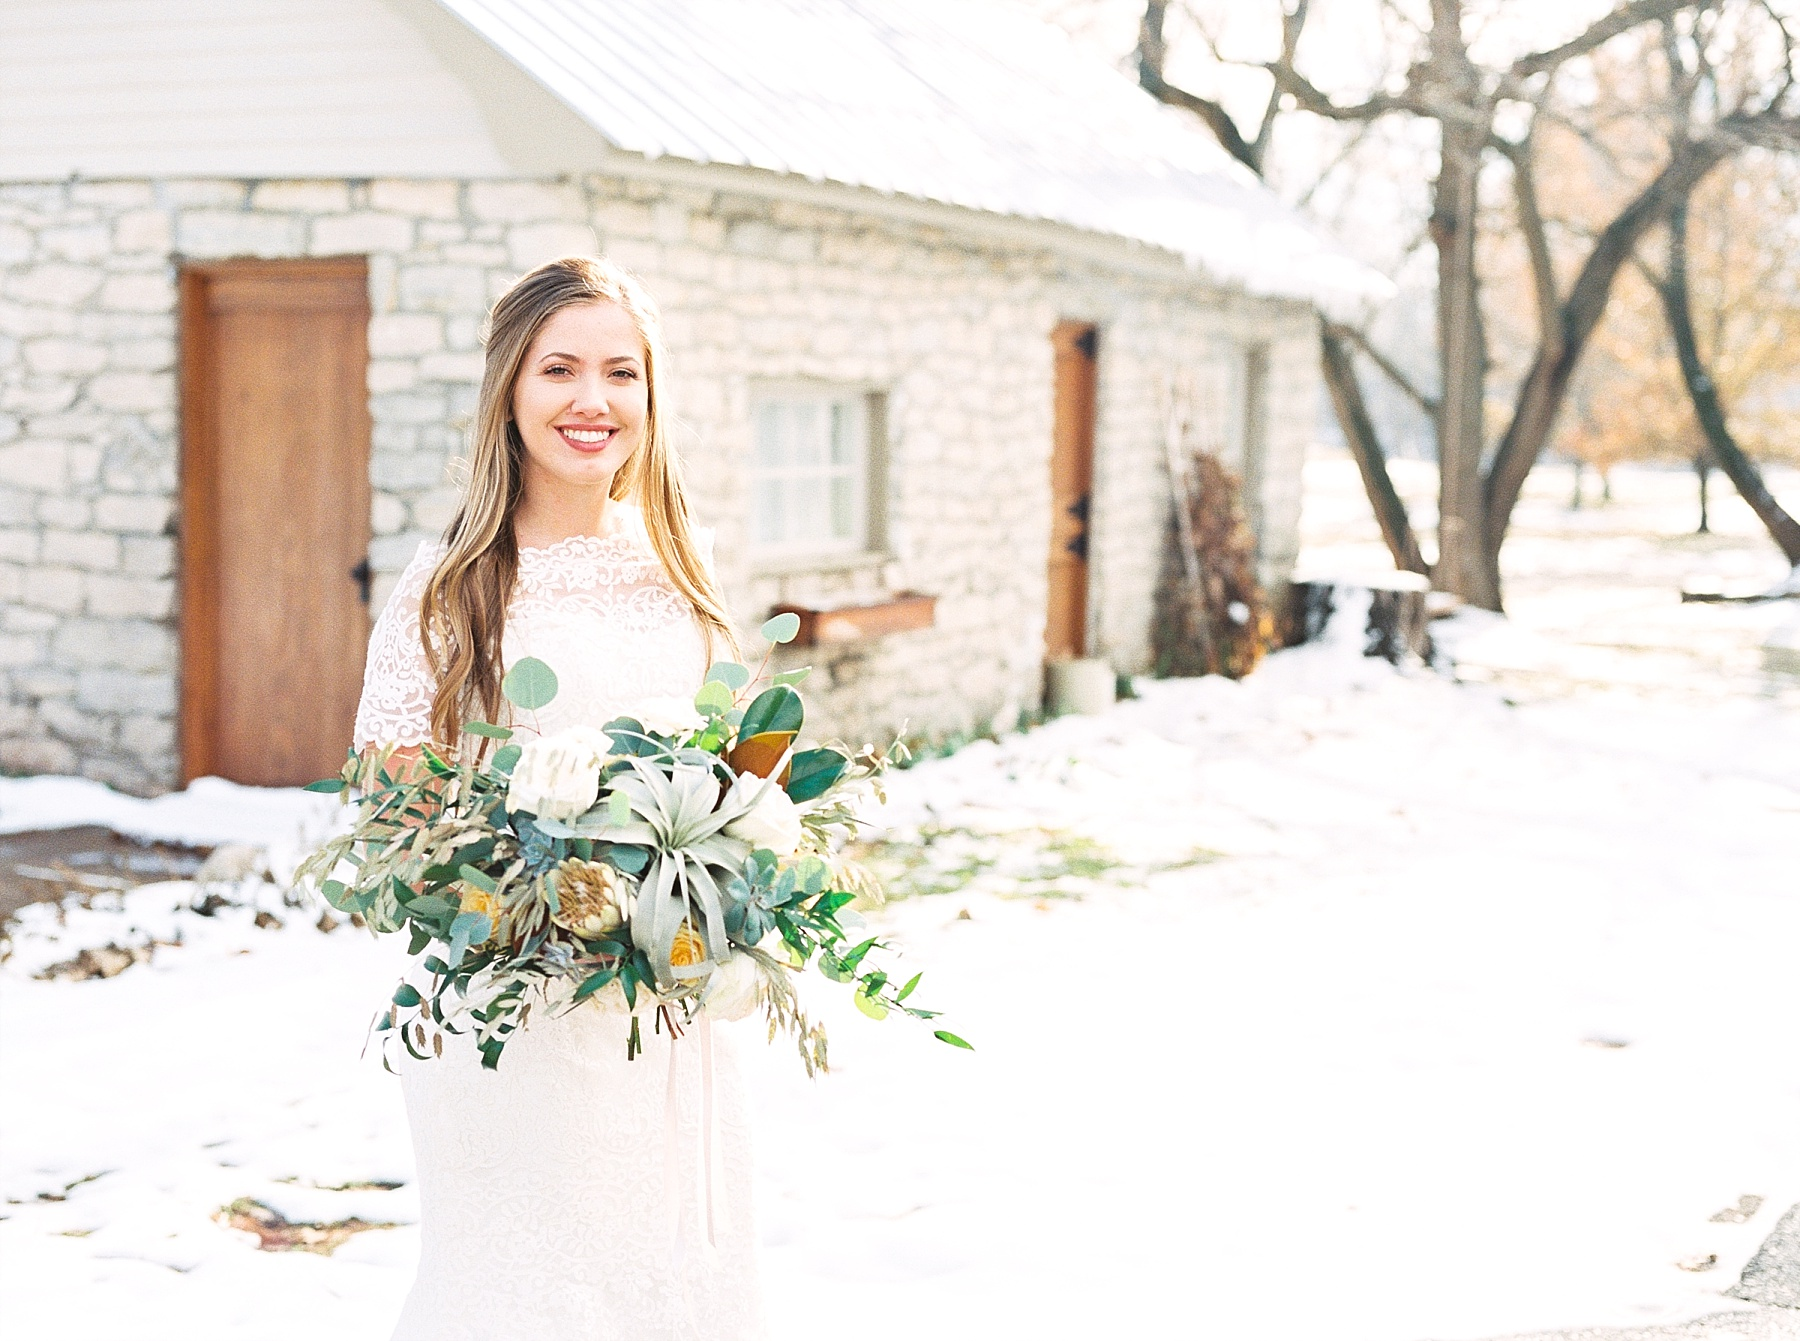 Snowy Winter Wedding at Wildcliff Events Lake With Earthy Jewel Tones and Organic Refined Style by Kelsi Kliethermes Photography Kansas City Missouri Wedding Photographer_0040.jpg